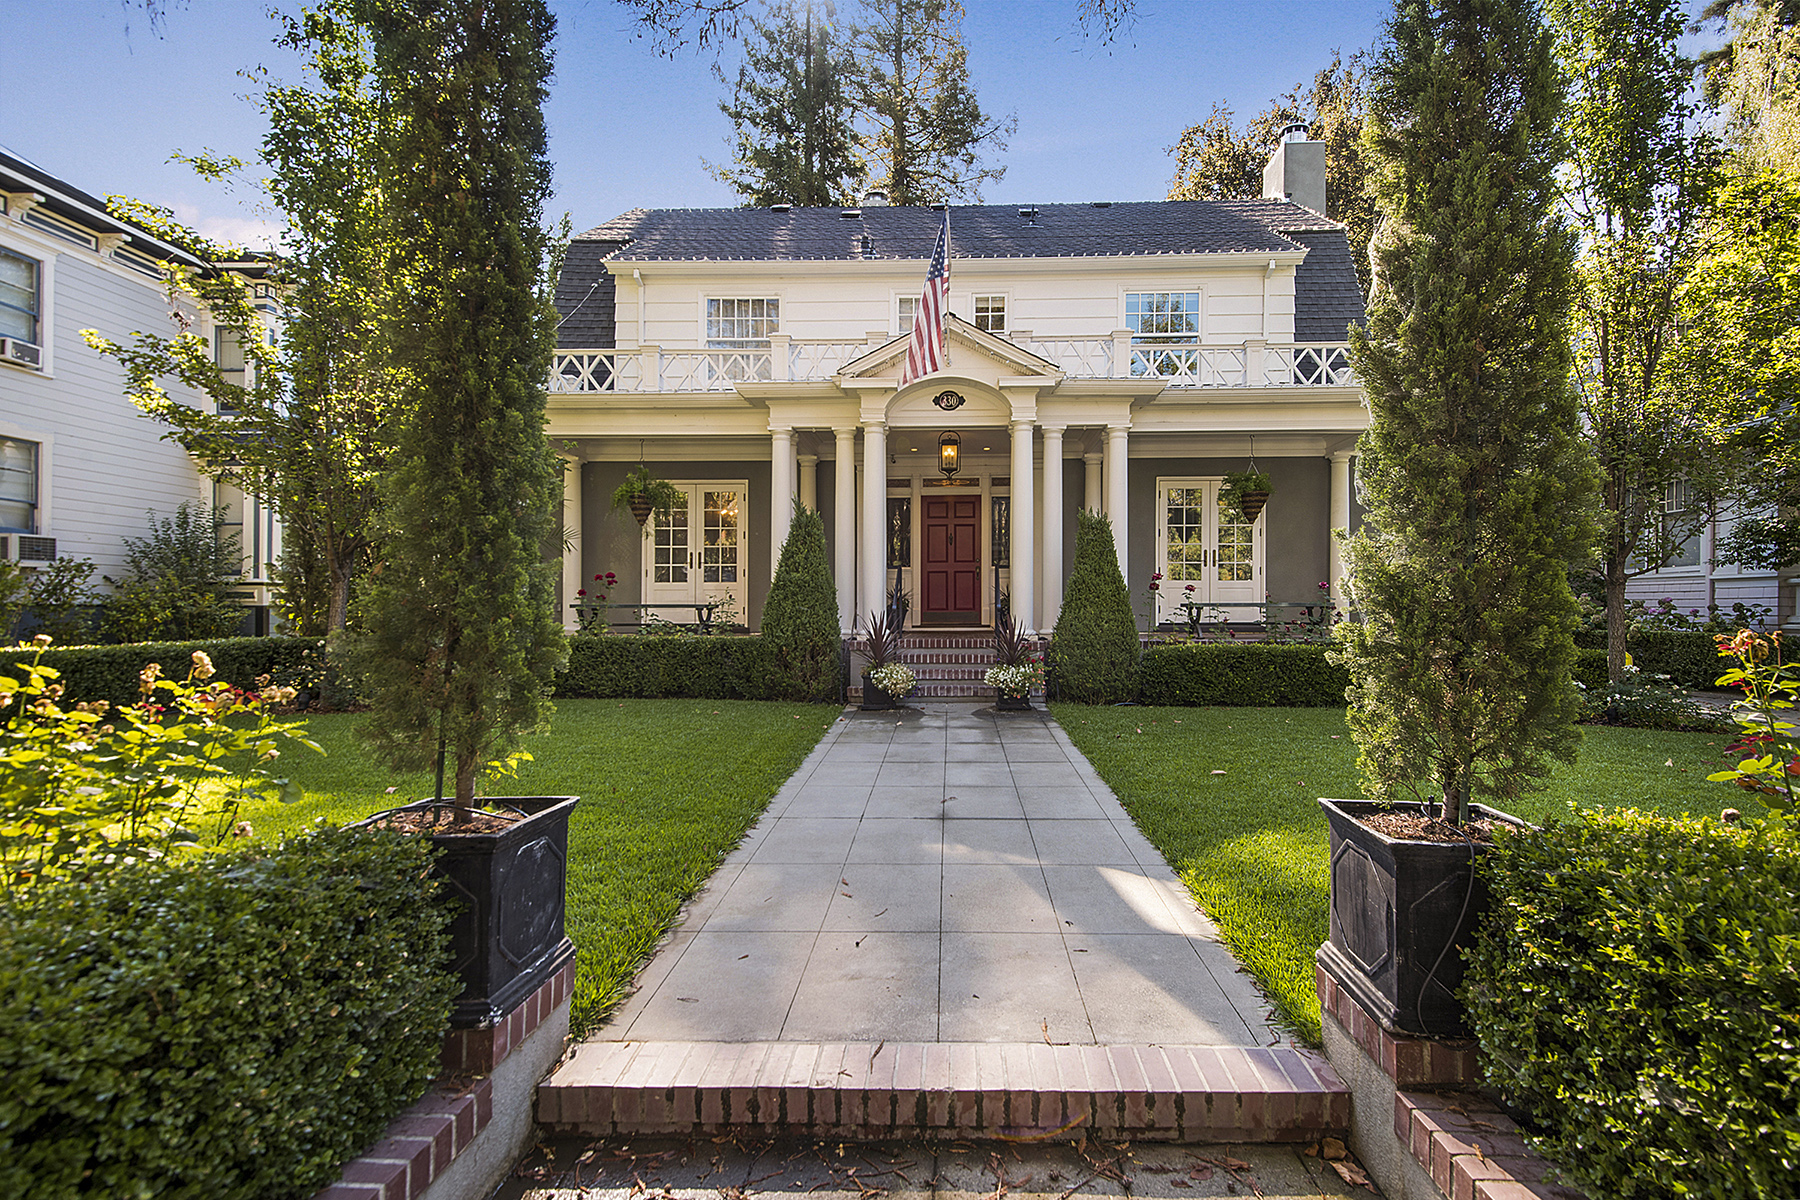 Single Family Home for Sale at An Elegant Masterpiece in The Historic District 330 Franklin St Napa, California 94559 United States